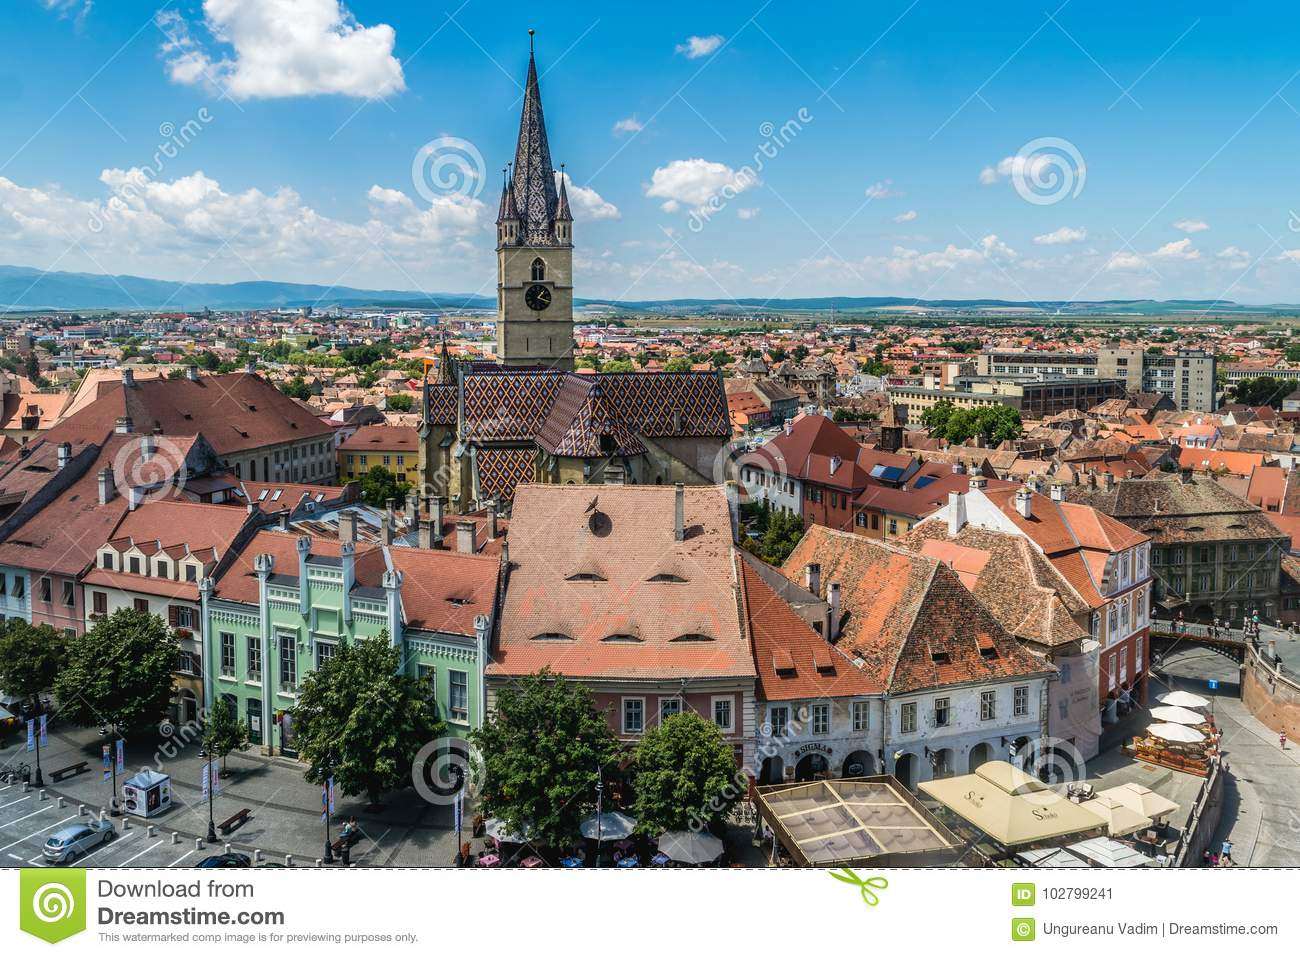 Overview of Sibiu, view from above, Transylvania, Romania, July